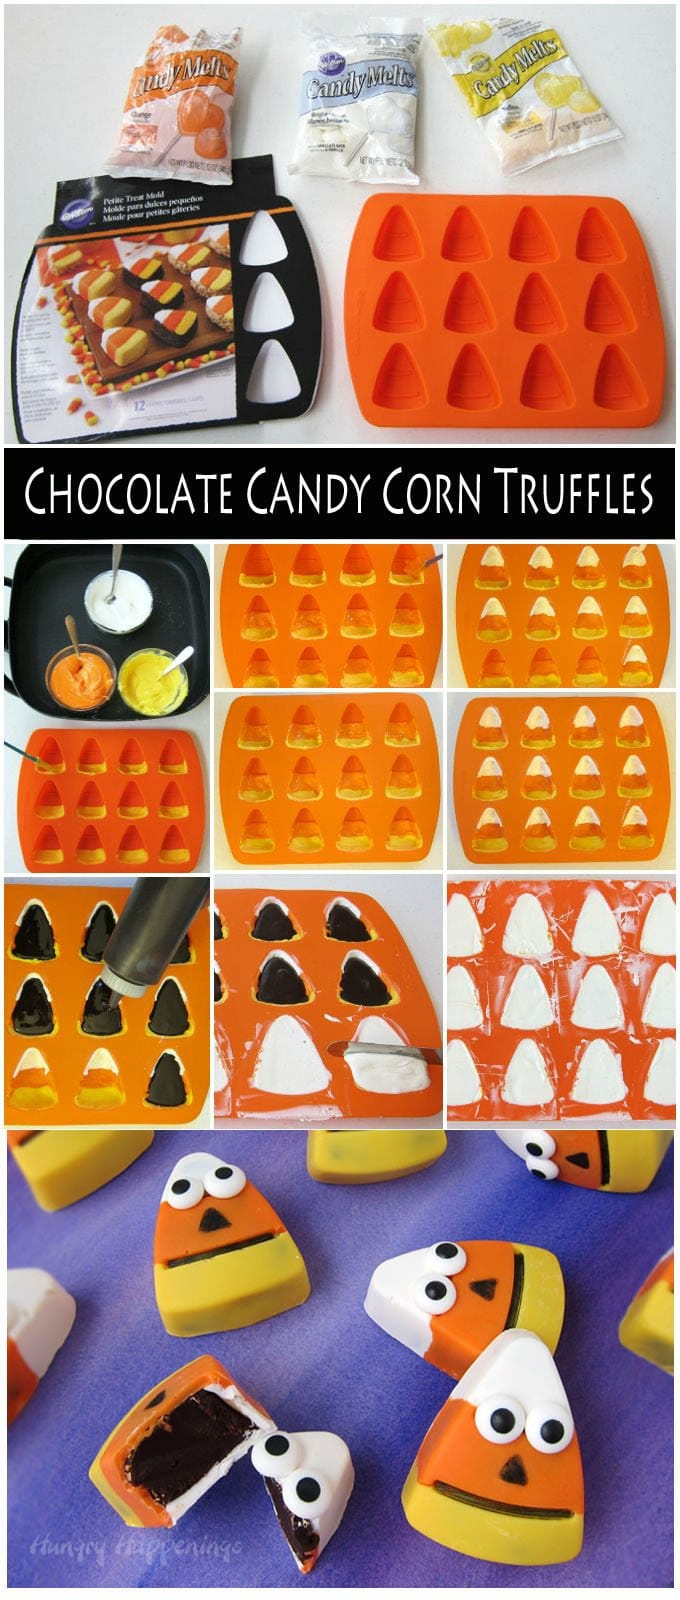 How to make Chocolate Candy Corn Truffles with chocolate ganache centers. They make fun Halloween treats. Tutorial at Hungry Happenings.